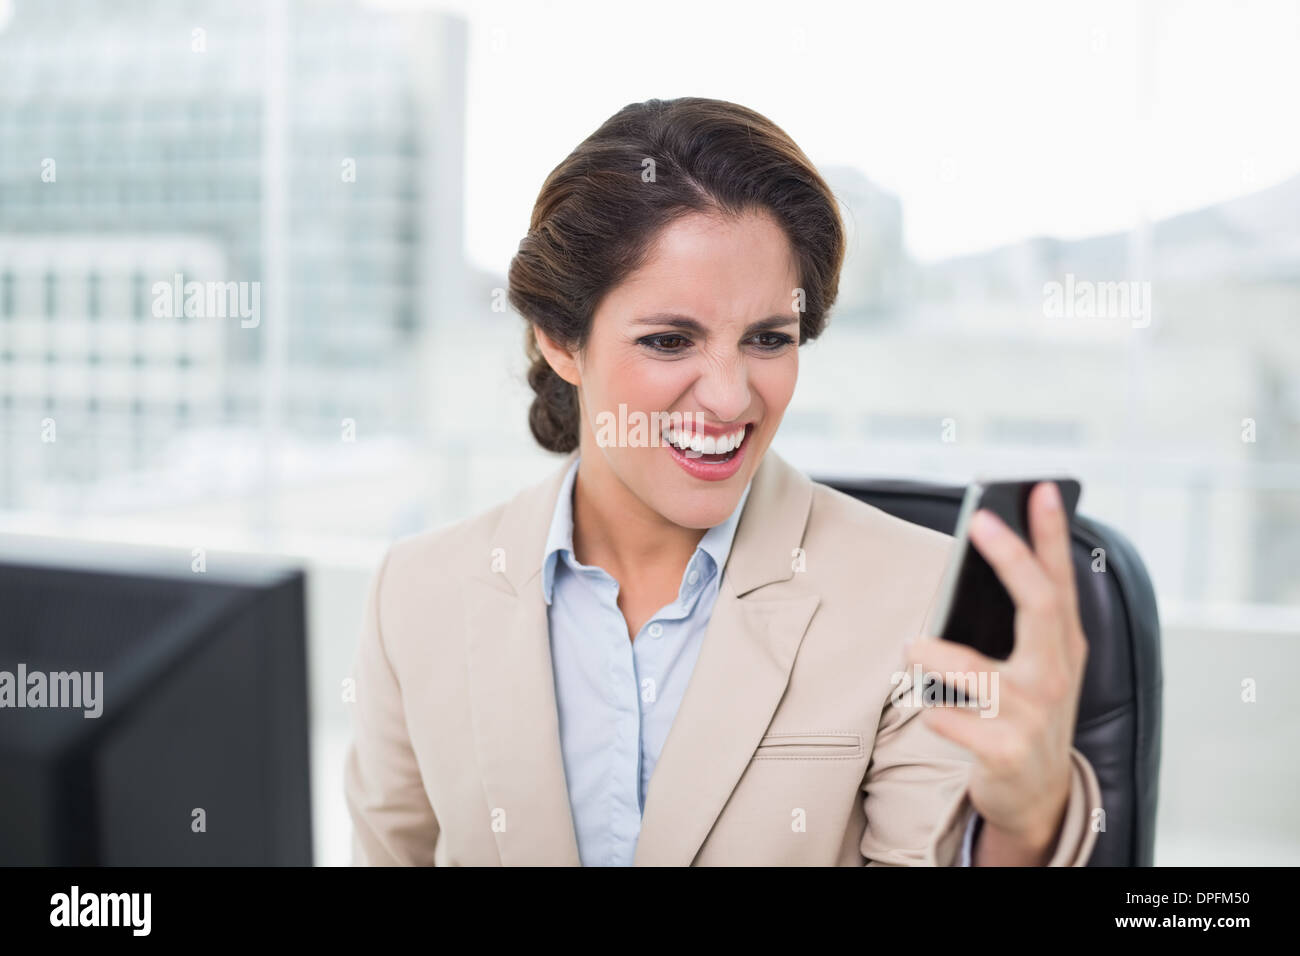 Furious businesswoman shouting at smartphone - Stock Image